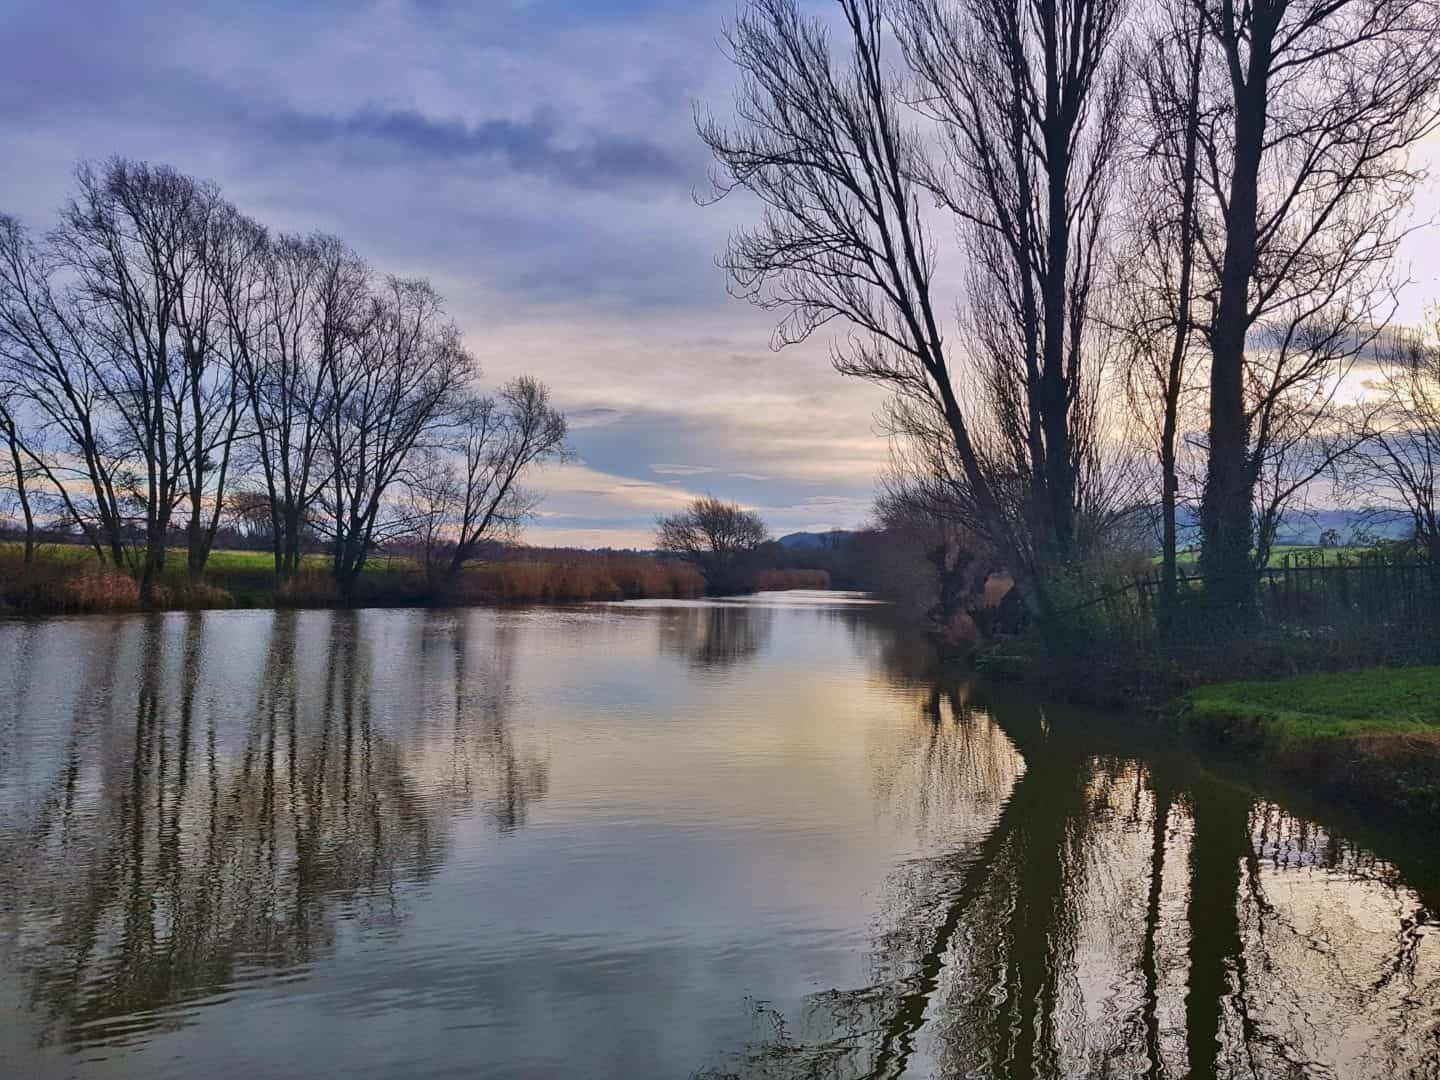 Depiction of the environment as a reason to do Veganuary. Image of a river reflecting the sky.